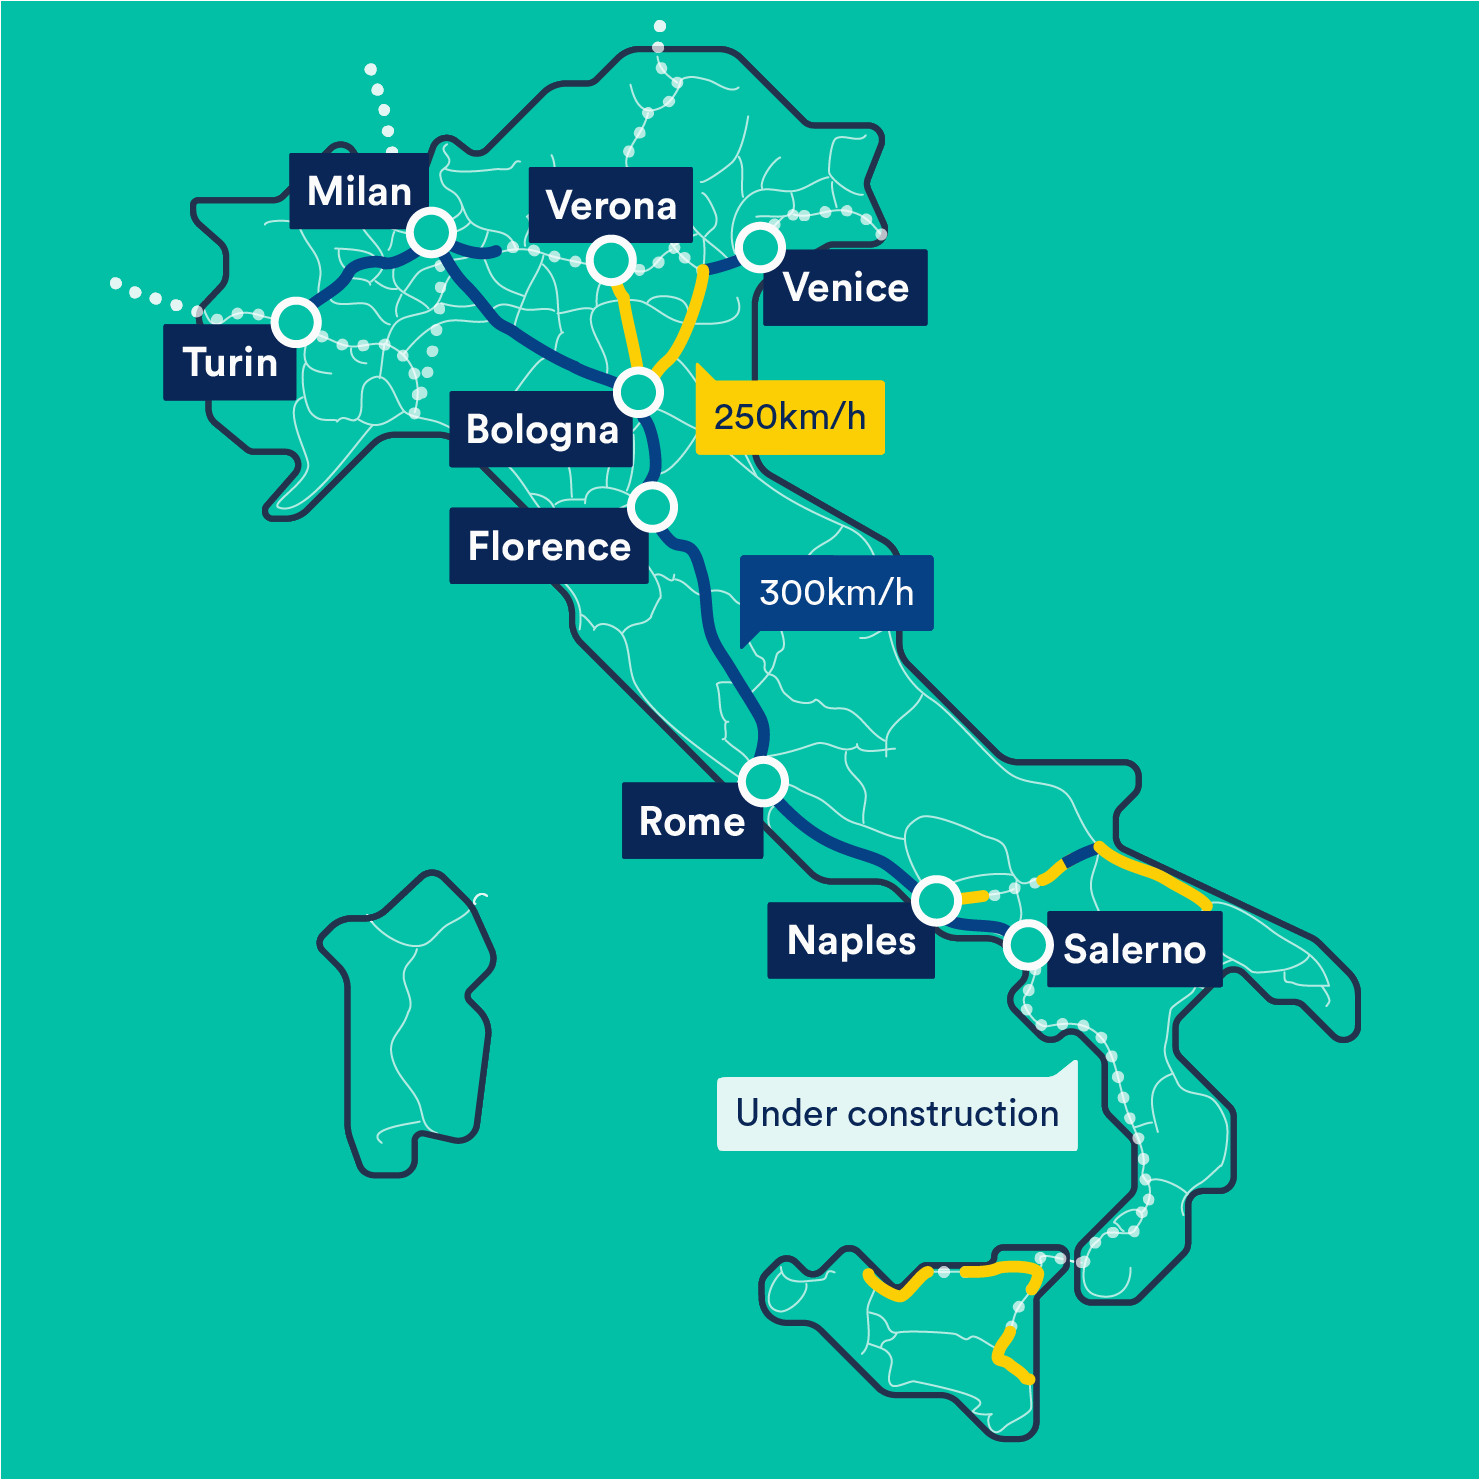 trenitalia map with train descriptions and links to